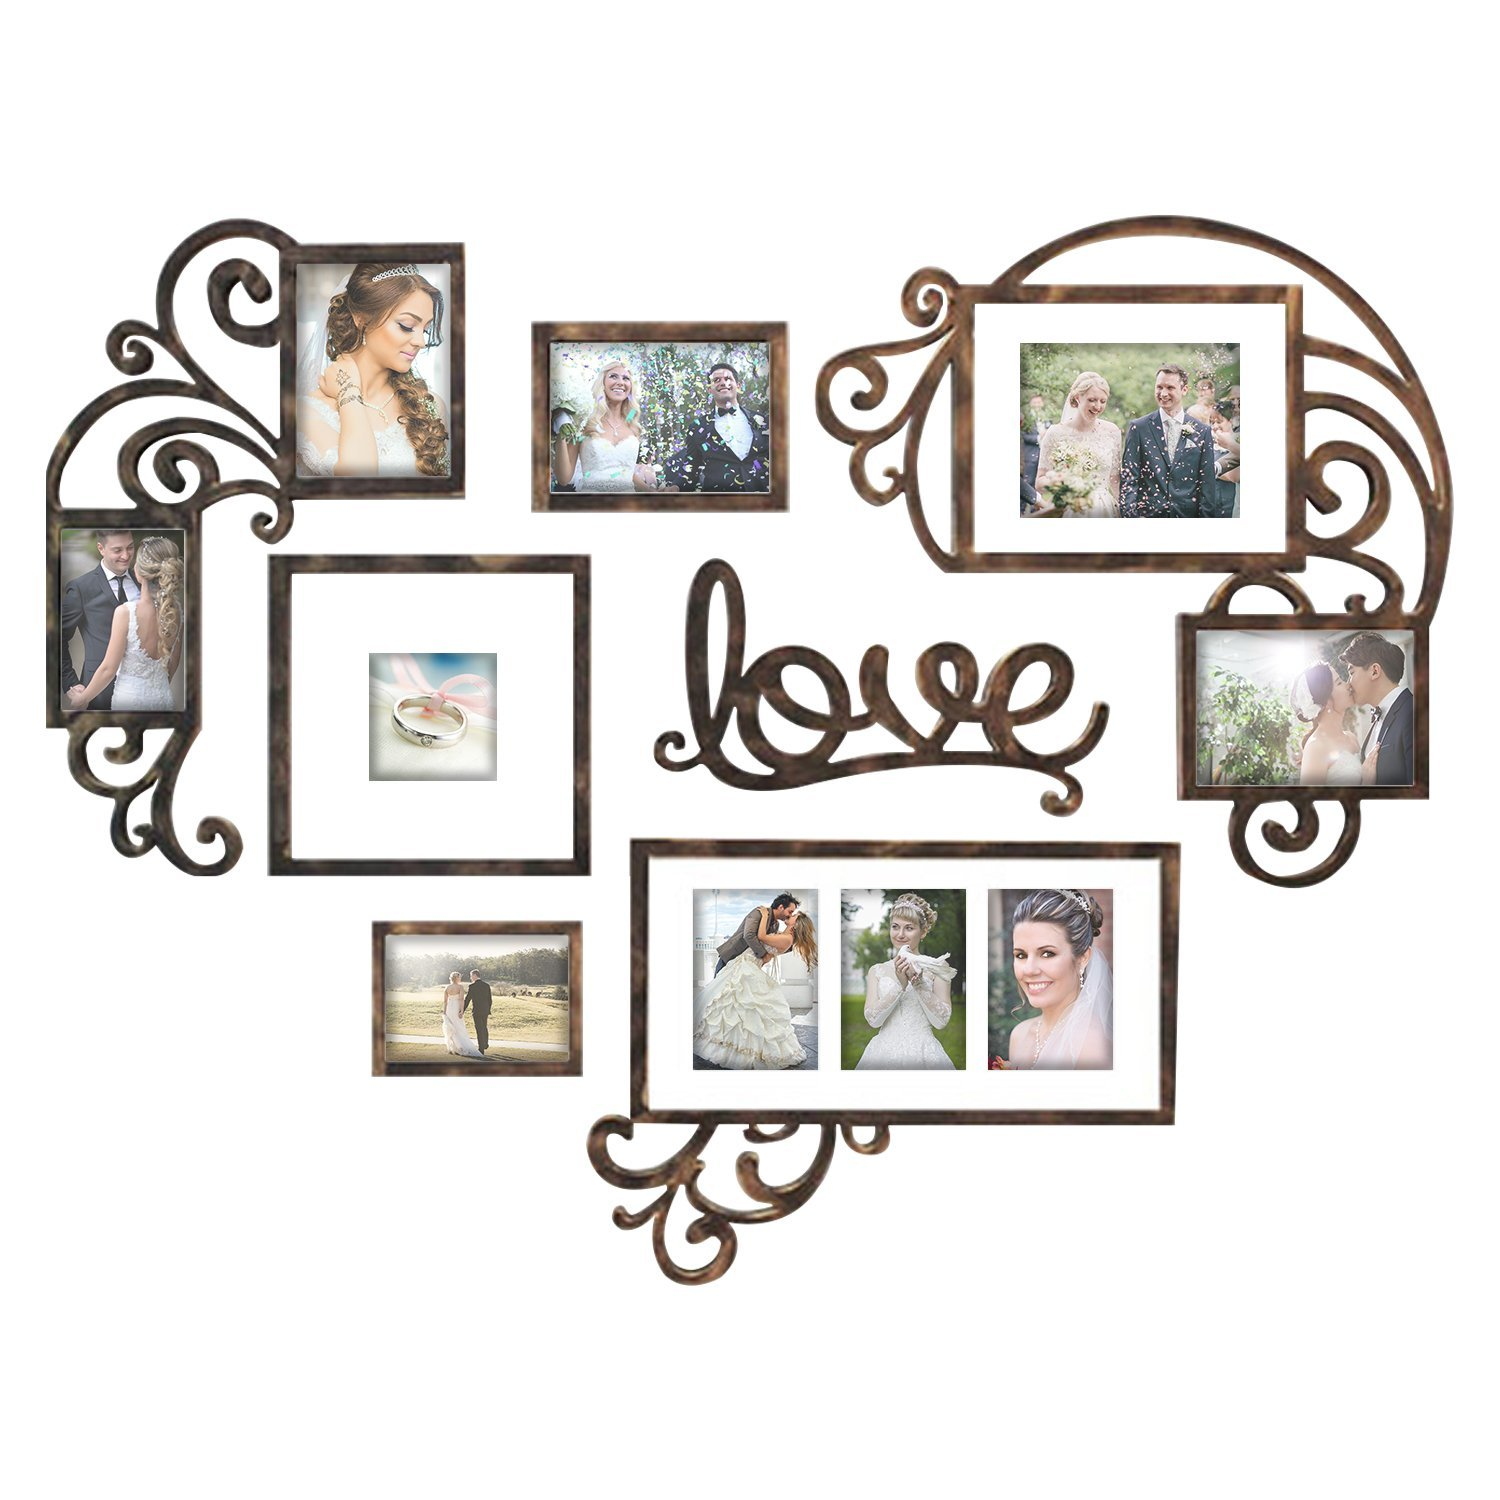 DL furniture - Heart Love Photo Frame & Plaque College - Valentine Wall Decoration Combination - PVC Picture Frame Selfie Gallery Collage Wall Hanging Mounting Design | Love Heart Shape | Brown Tone